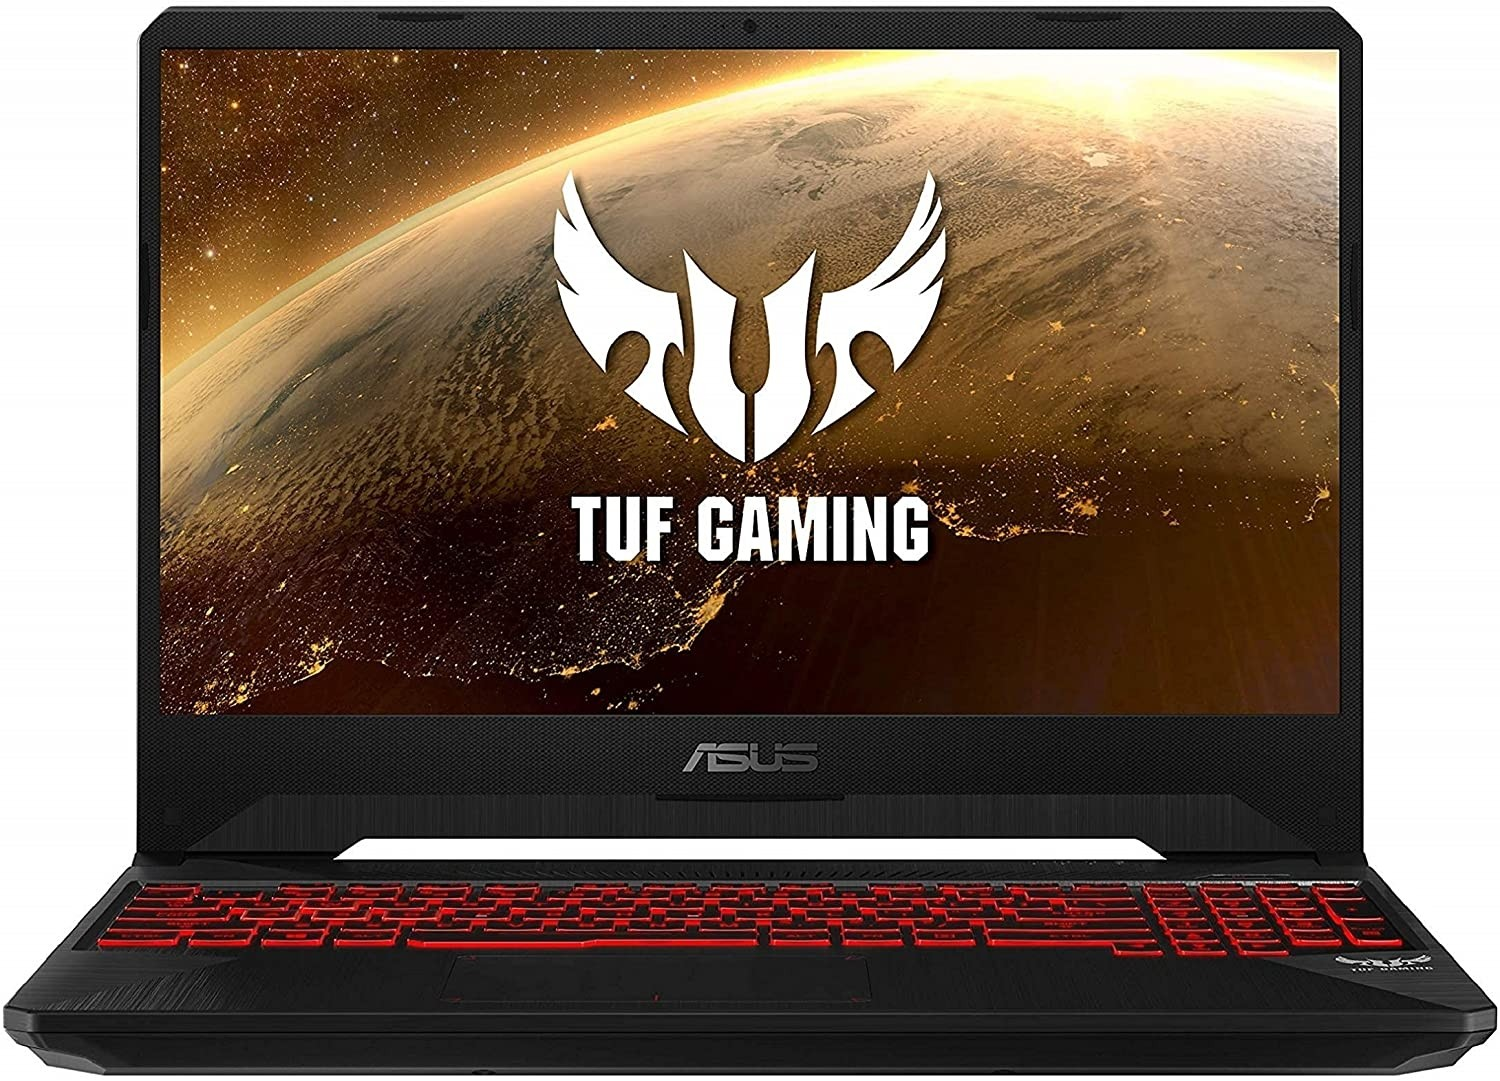 Refurbished laptops & desktops - ASUS TUF GAMING FX505DY-BQ002T 15.6-INCH FHD LAPTOP (AMD RYZEN 5-3550H/8GB/1TB HDD/WINDOWS 10/RADEON